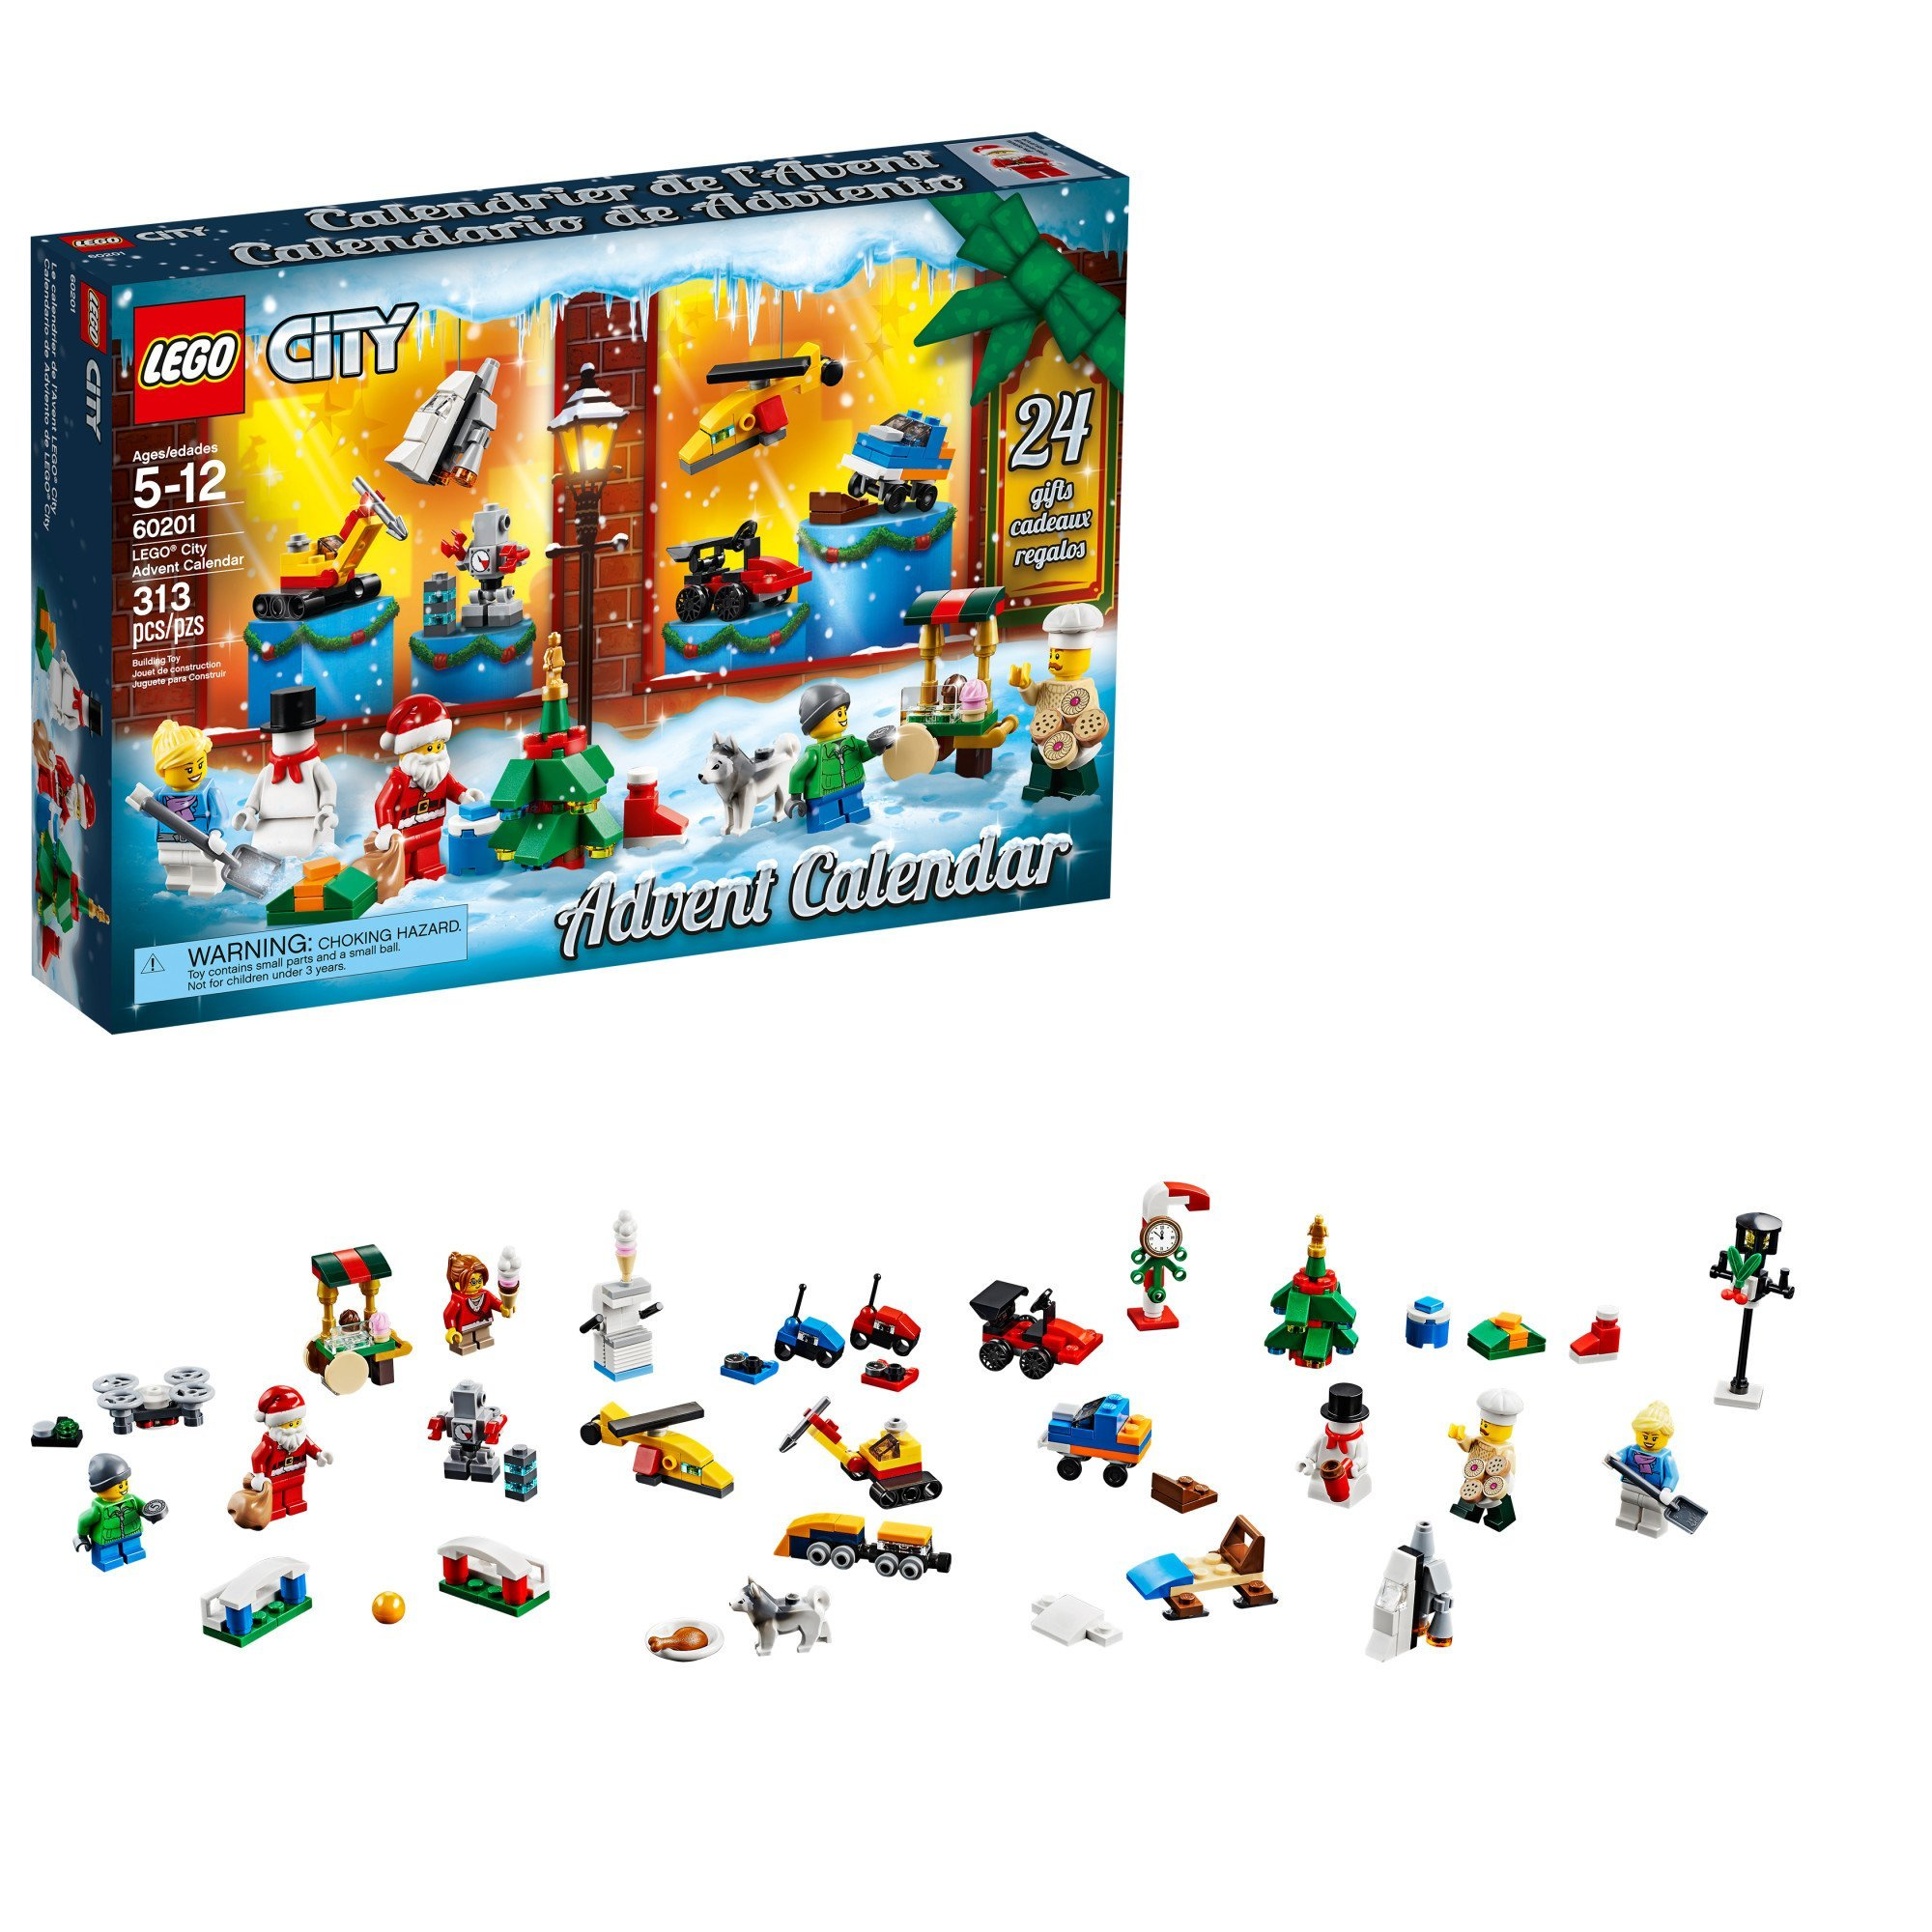 Lego city advent calendar 60201 new 2018 edition minifigures small building toys